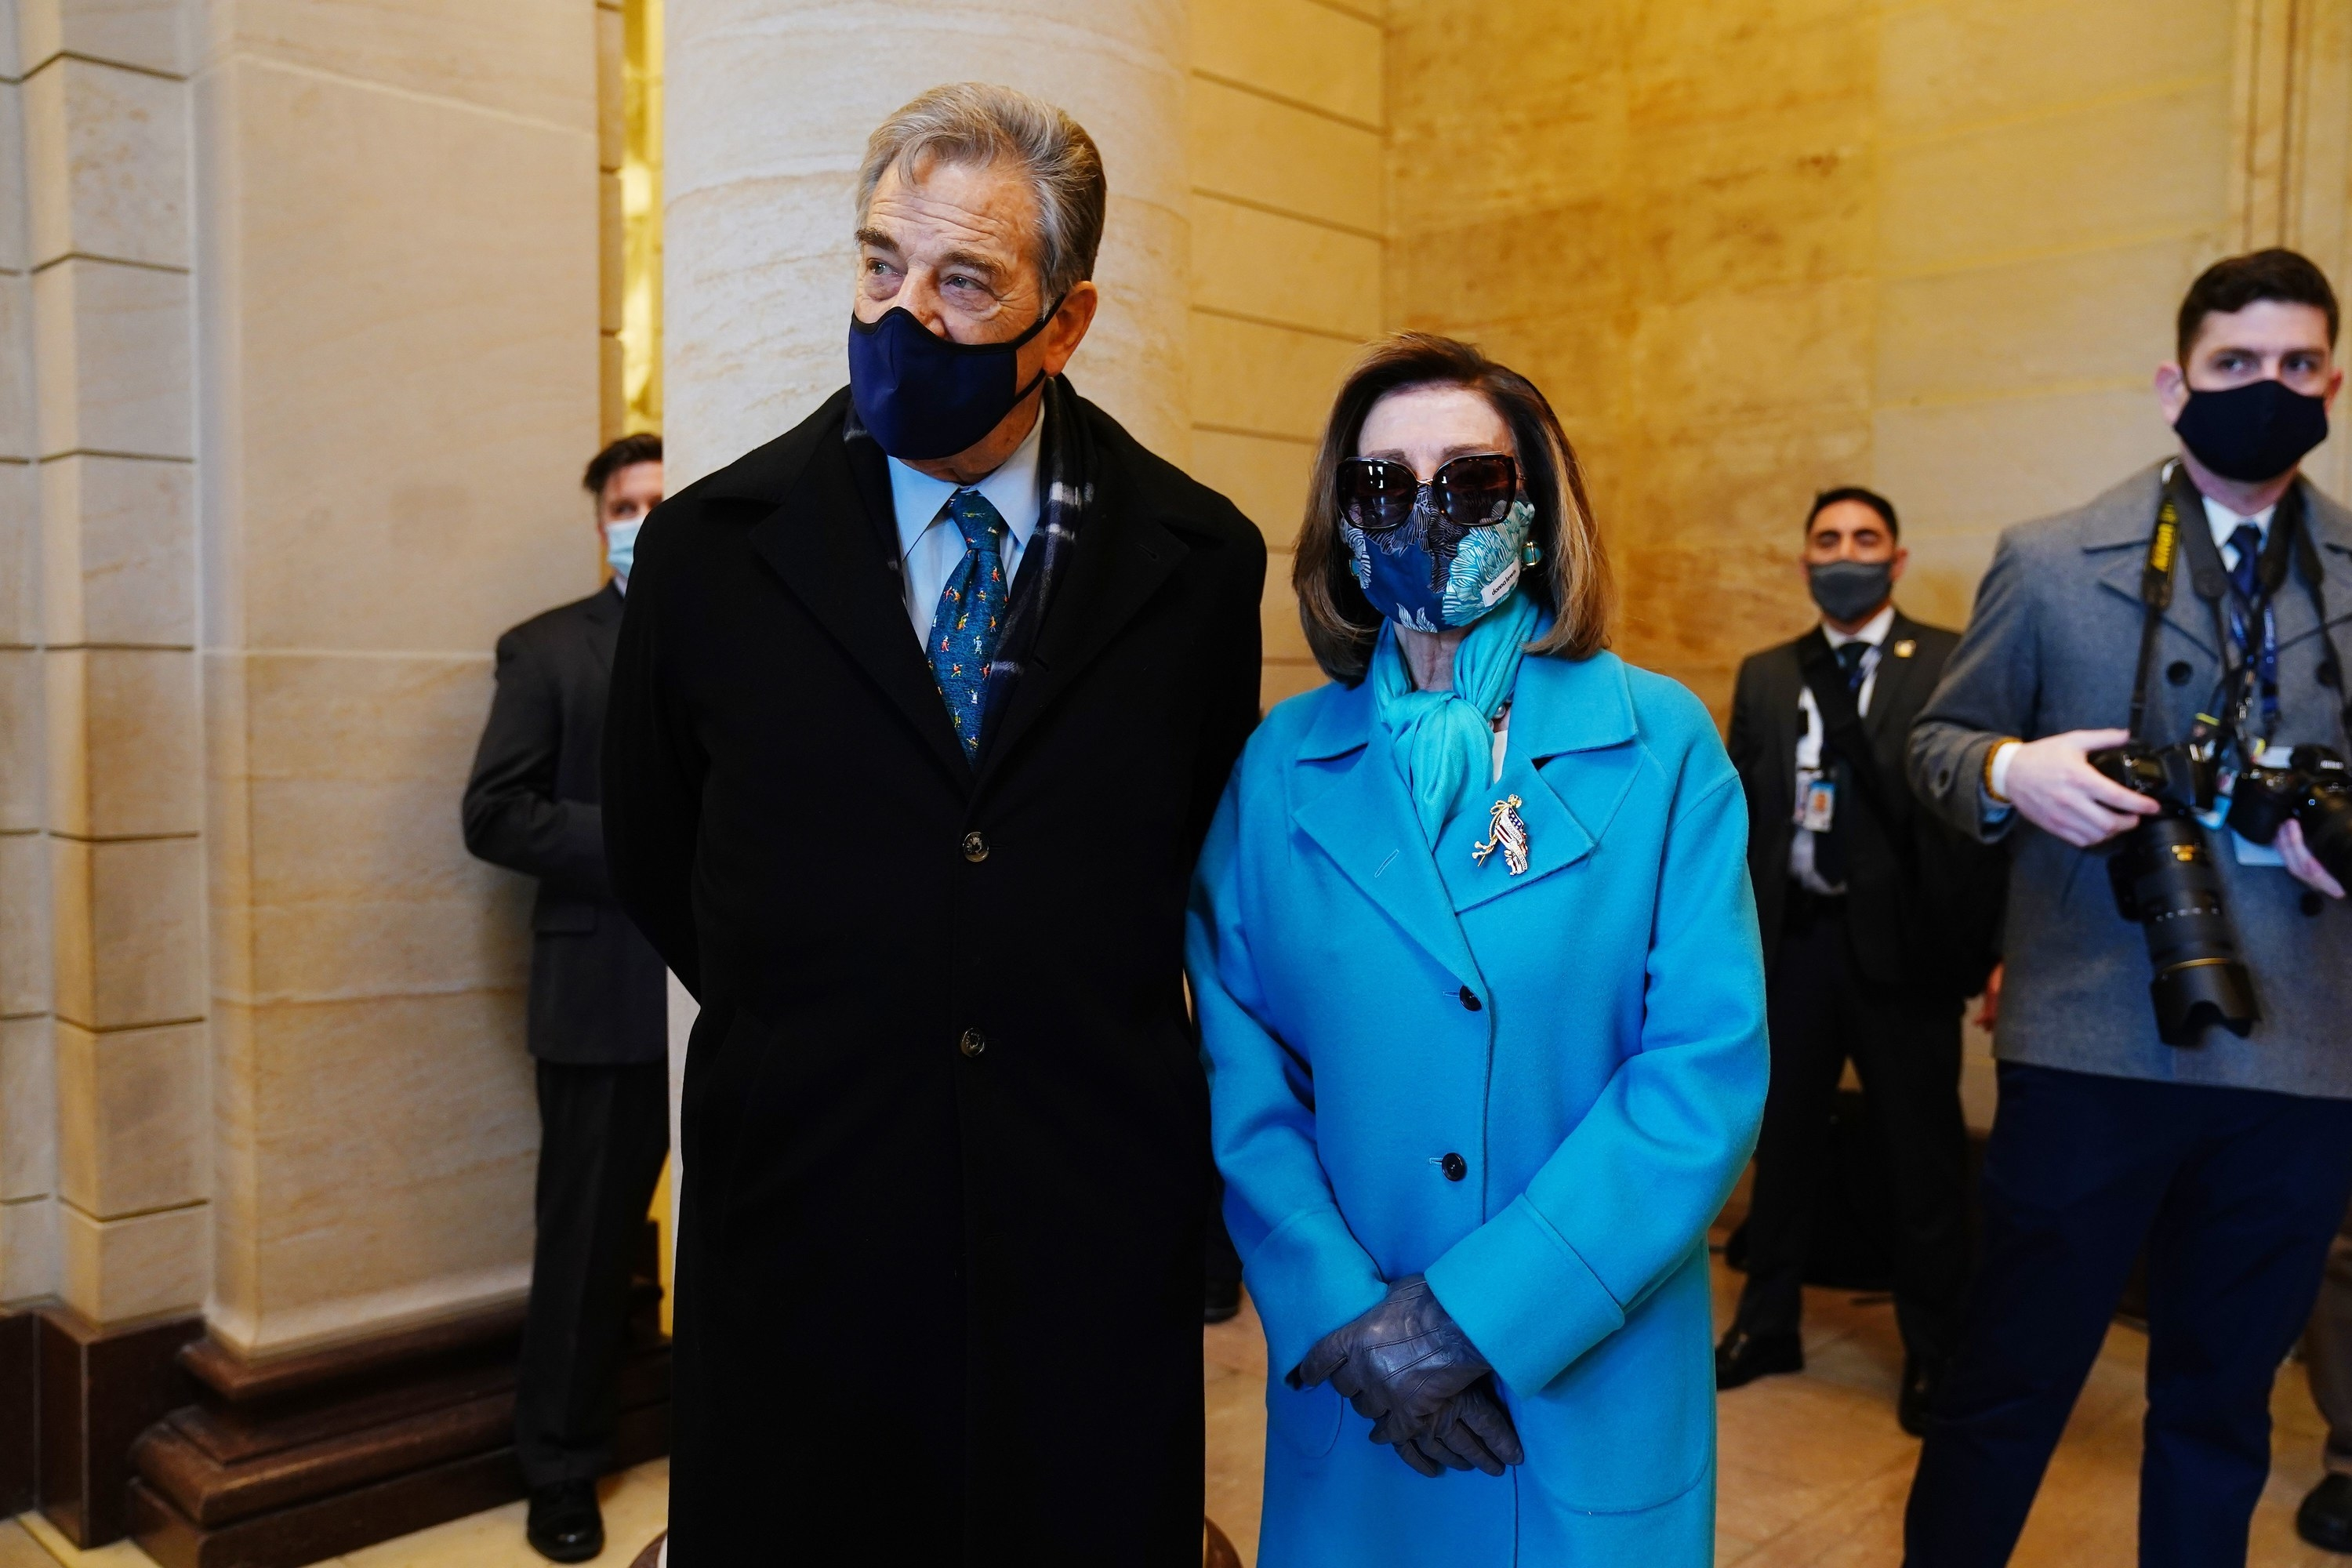 Nancy Pelosi in a blue floral face mask and her husband Paul in a navy face mask at the inauguration.